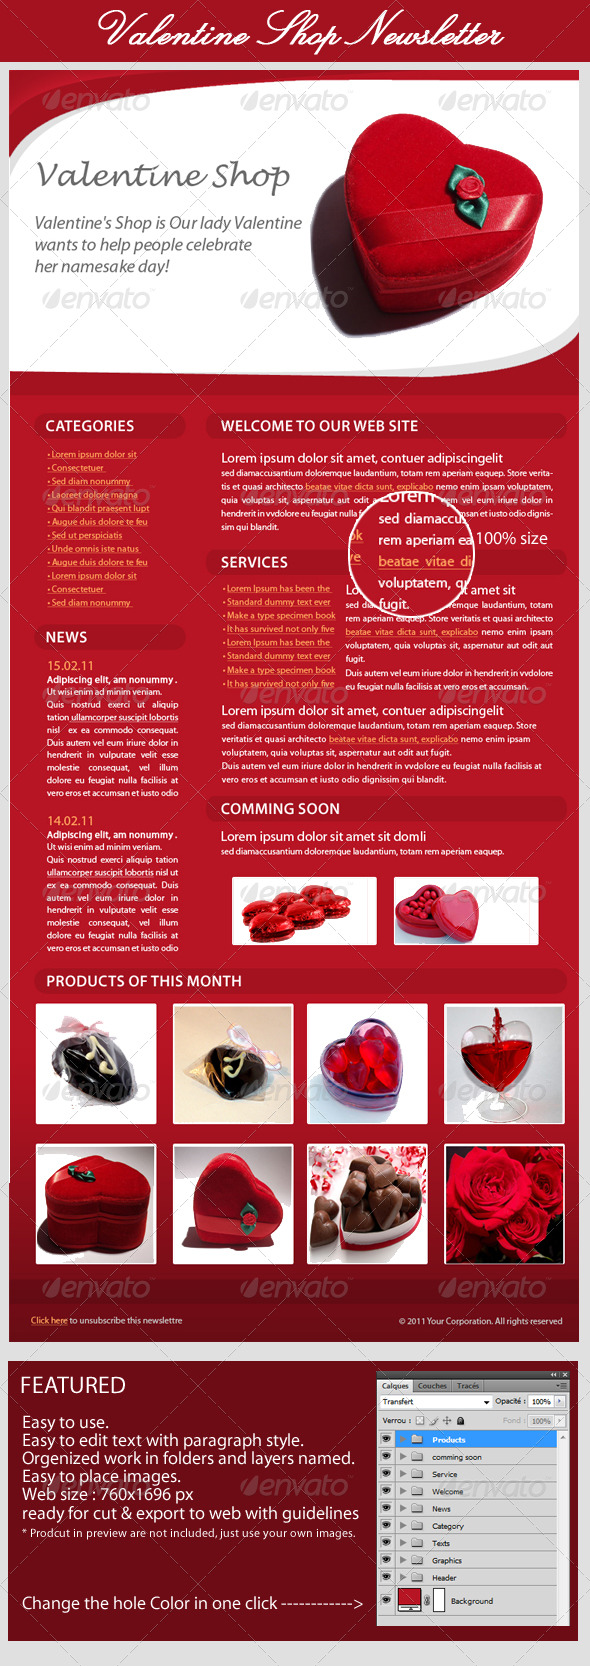 Valentines Day E-Newsletter - E-newsletters Web Elements